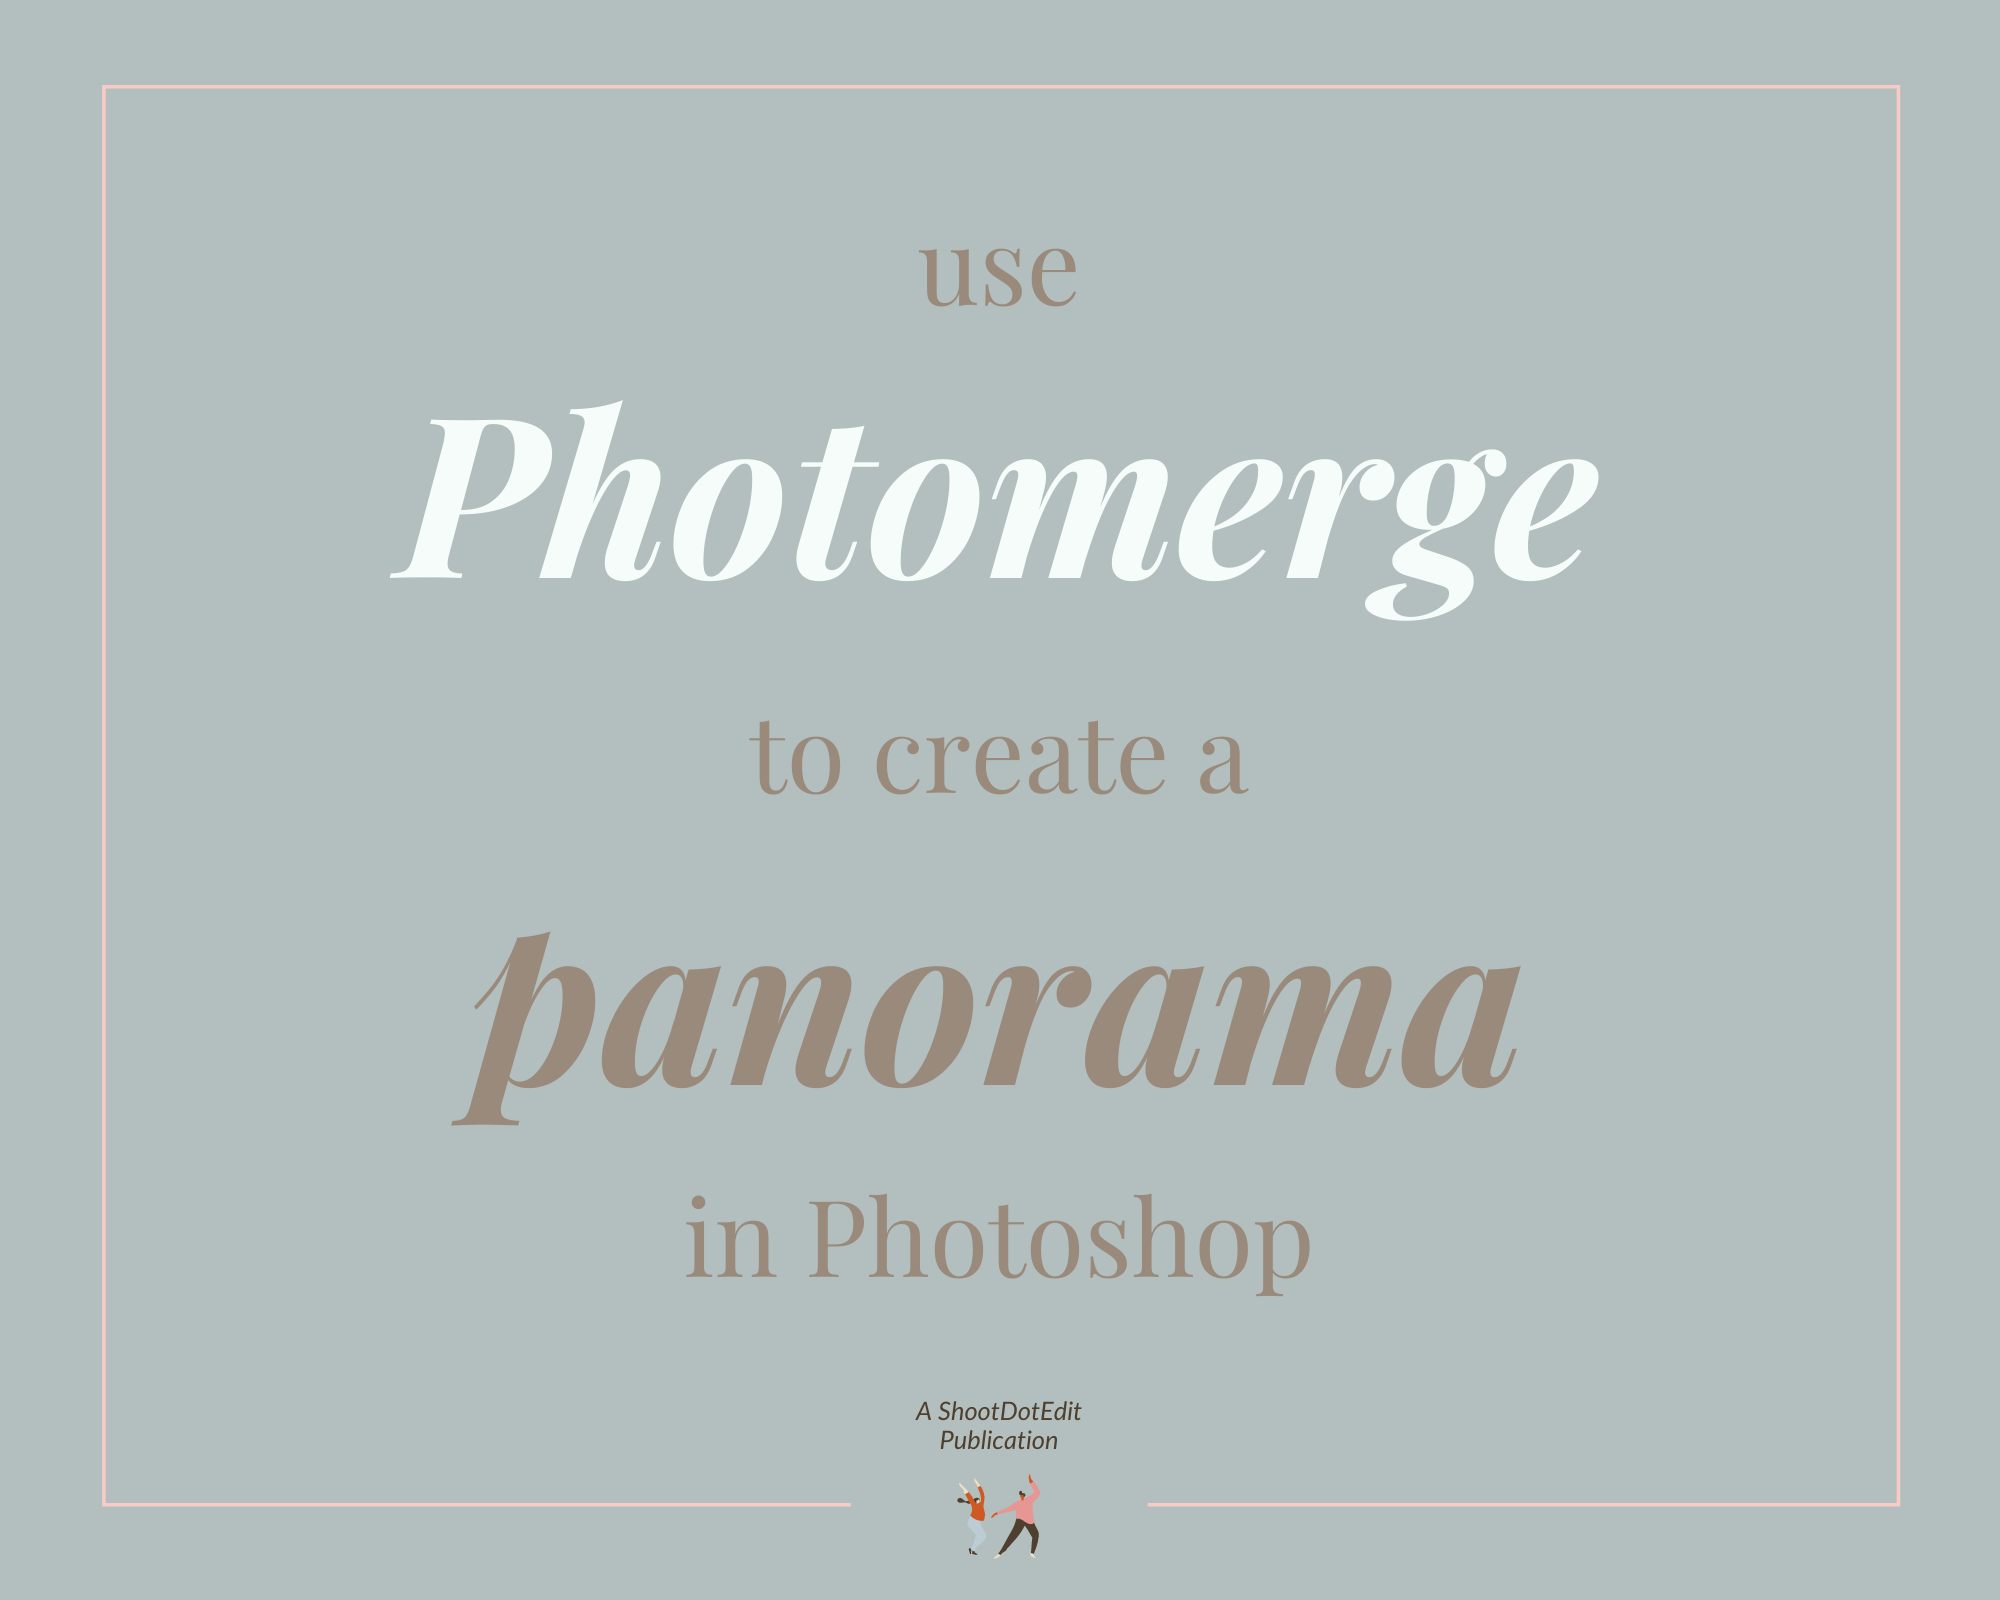 Infographic stating use photomerge to create a panorama in Photoshop